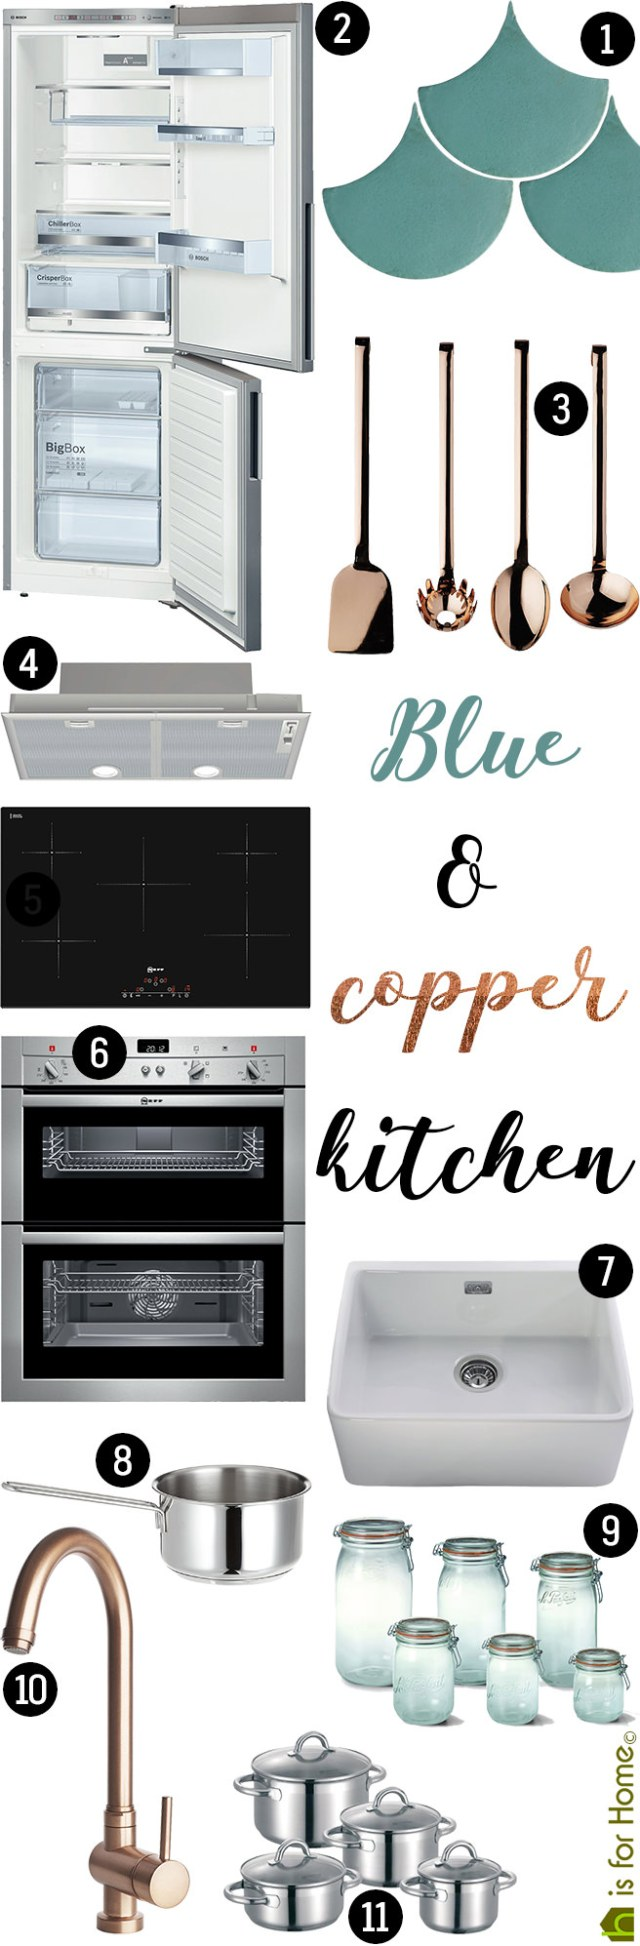 Get their Look: Blue & copper kitchen | H is for Home